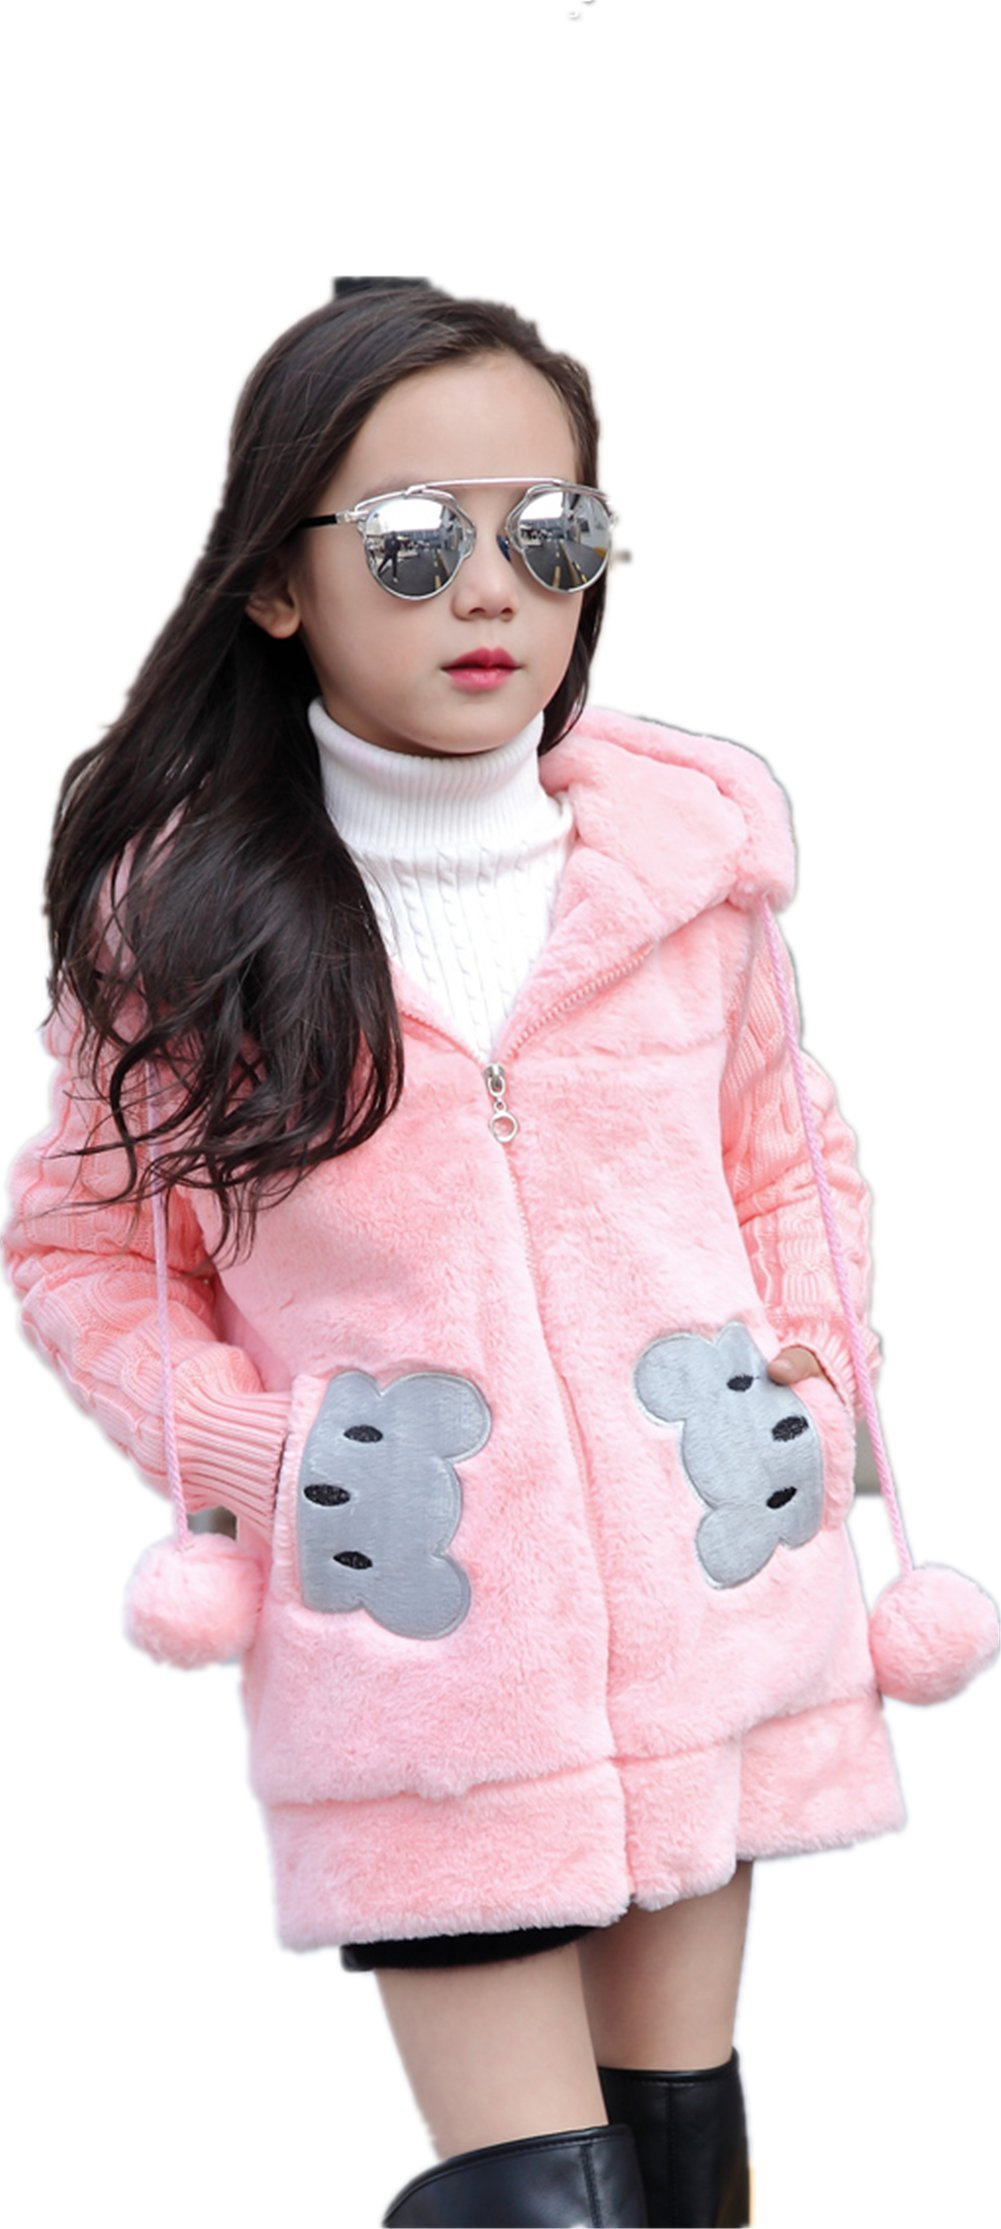 Face Dream Kids Girls Winter Warm Knited Fur Cartoon Coats Hooded Snowsuit Jackets Outerwear Pink, 4/5T by Face Dream